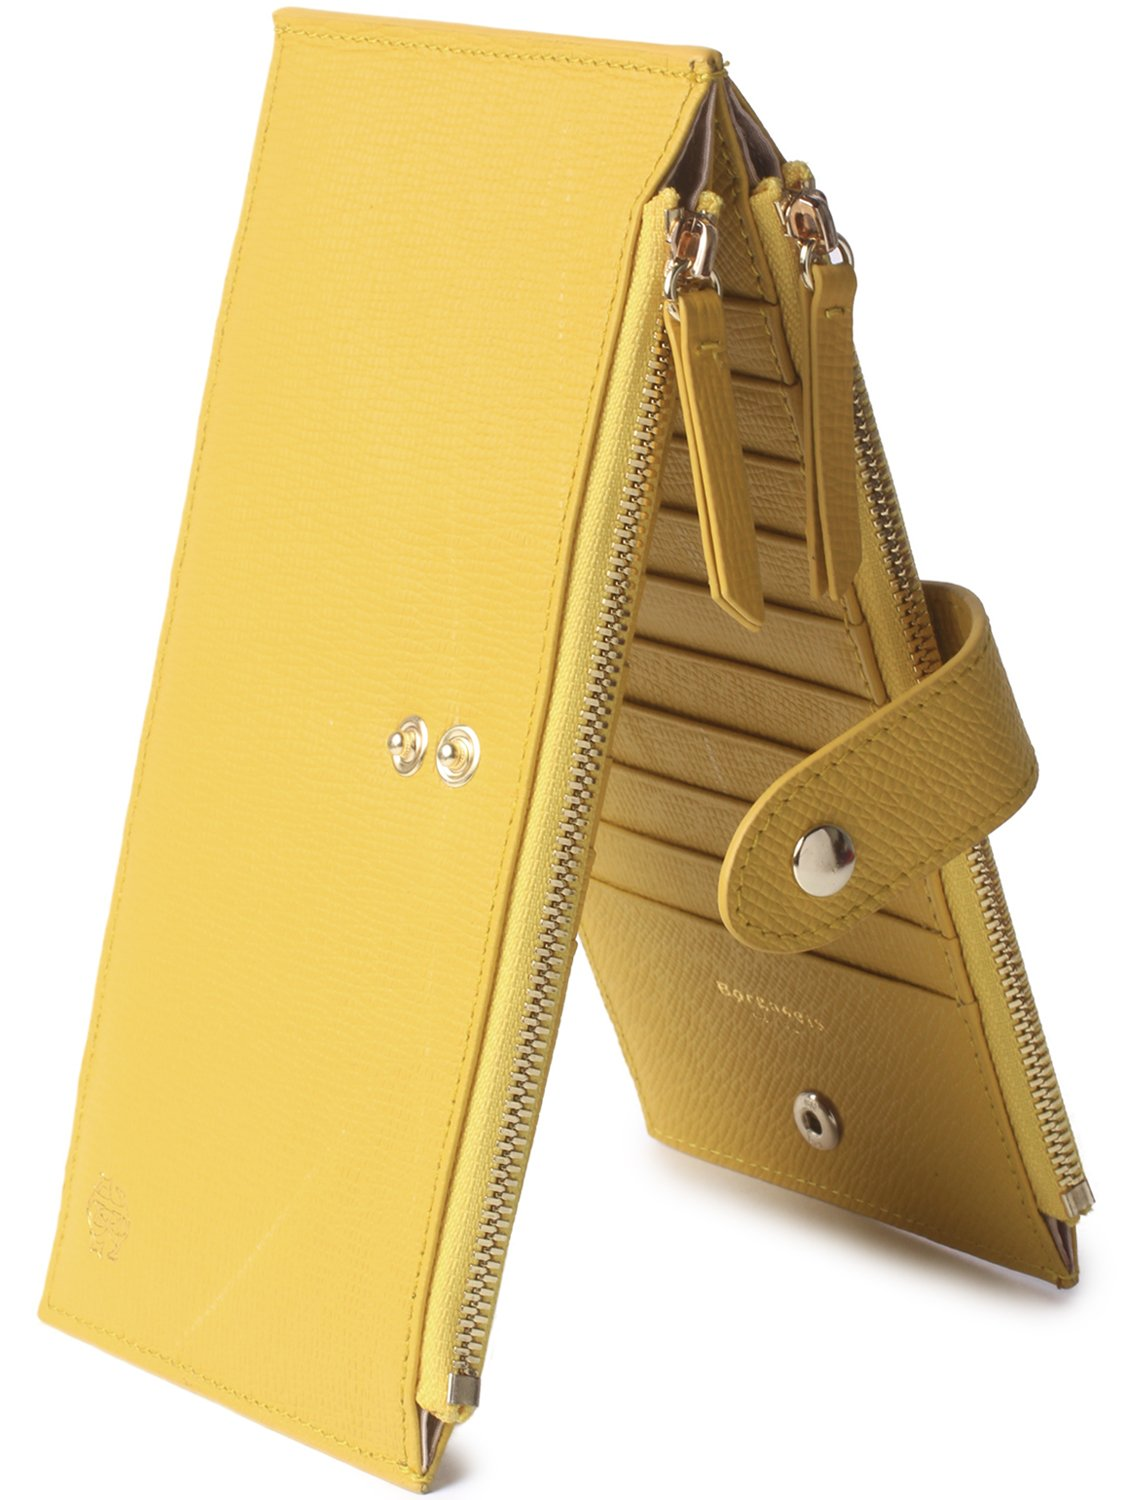 Borgasets Womens Walllet RFID Blocking Bifold Multi Card Case Wallet with Zipper Pocket Yellow